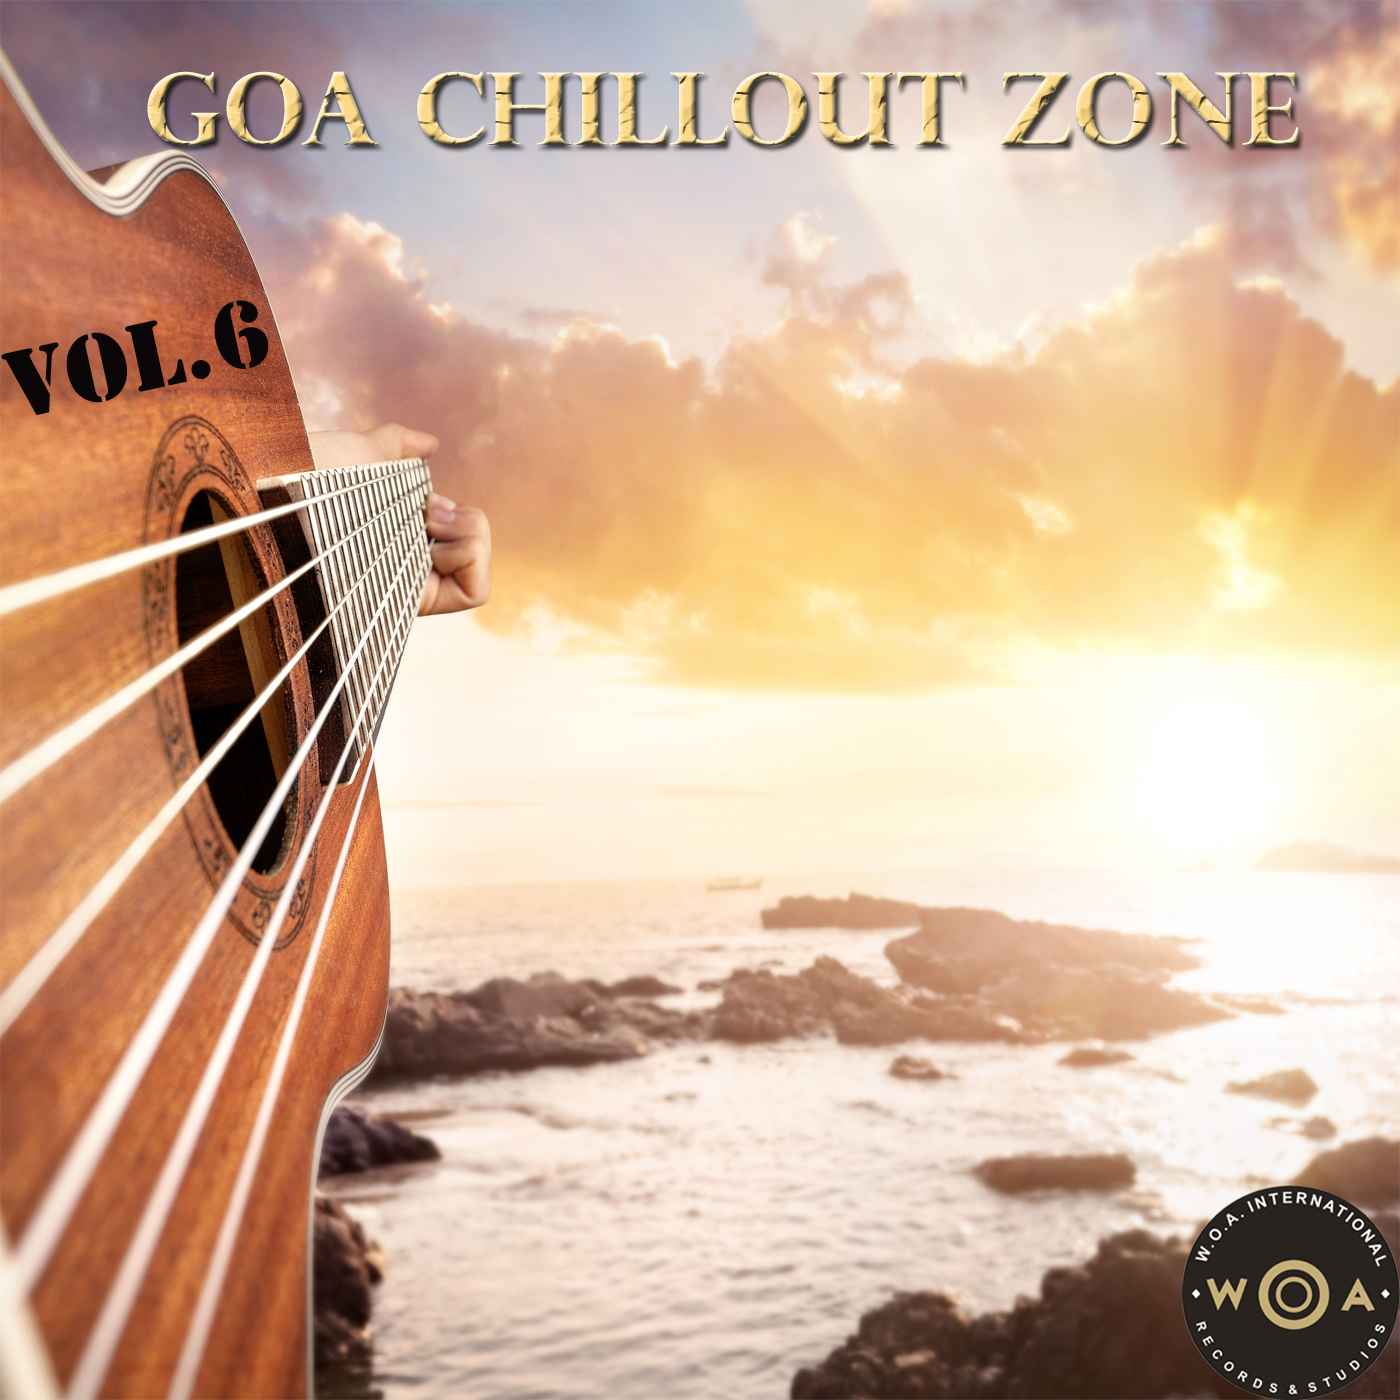 Goa Chillout Zone Vol.6